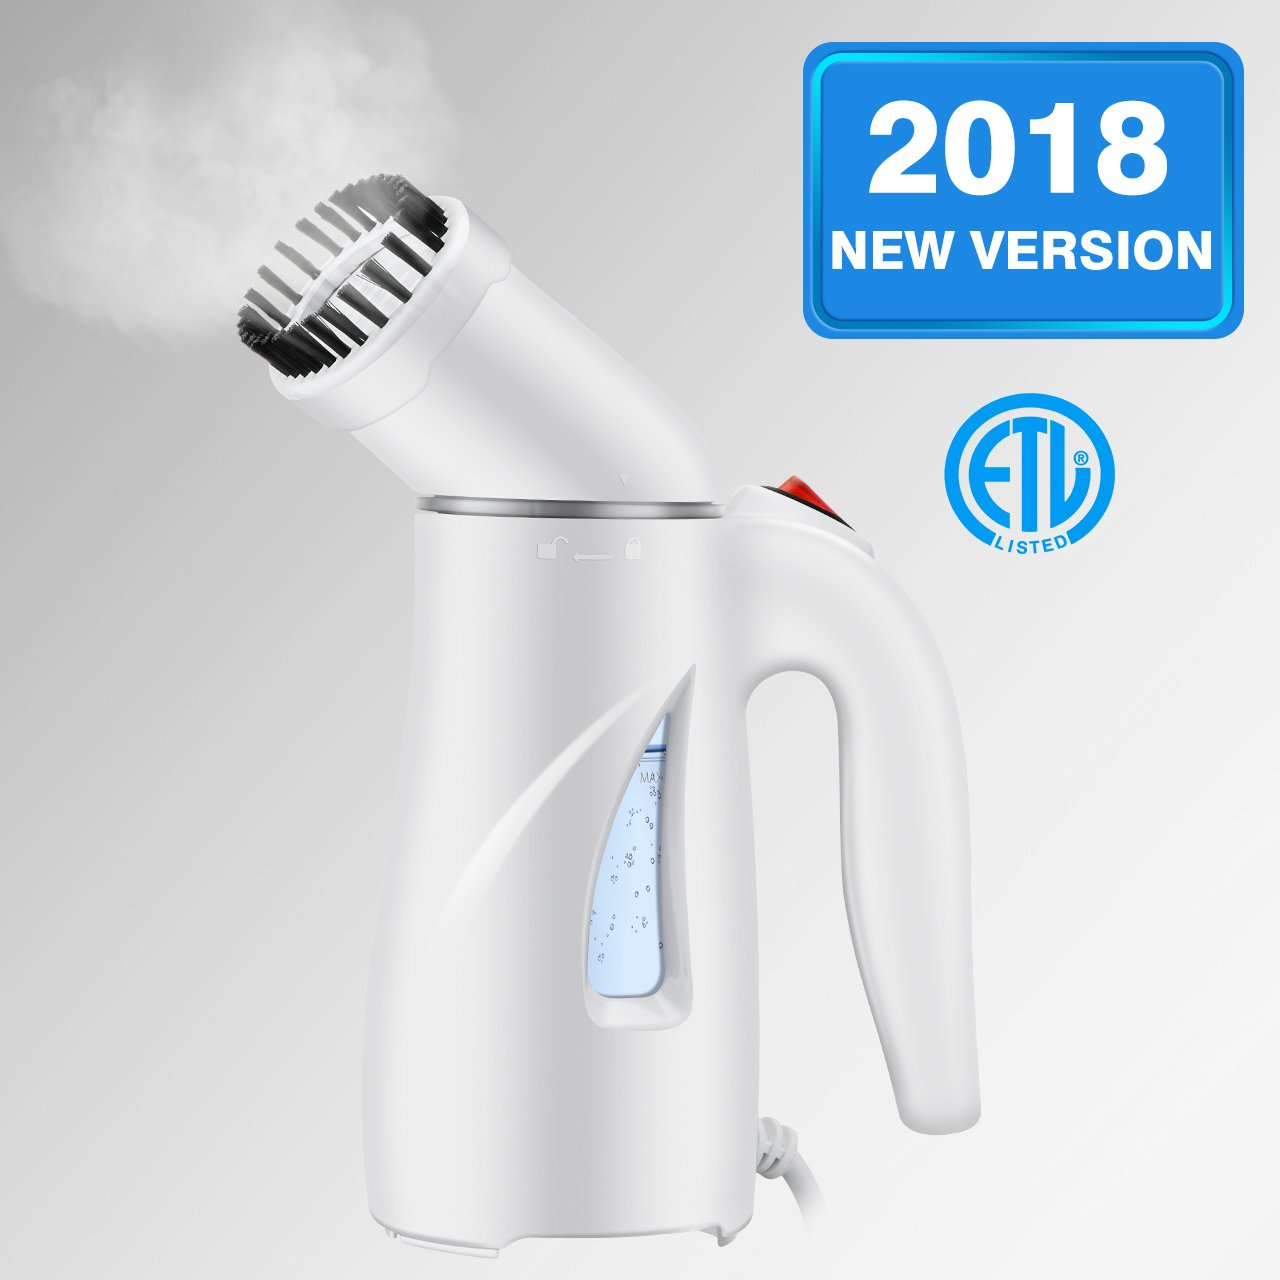 Homitt Handheld Clothes Steamer, Portable Travel Steamer for Clothes Wrinkle Remover with Automatic Shut-off and Fast Heat-up Function Safe Use for Travel,Office and Home|Mother's Gift [New Version]